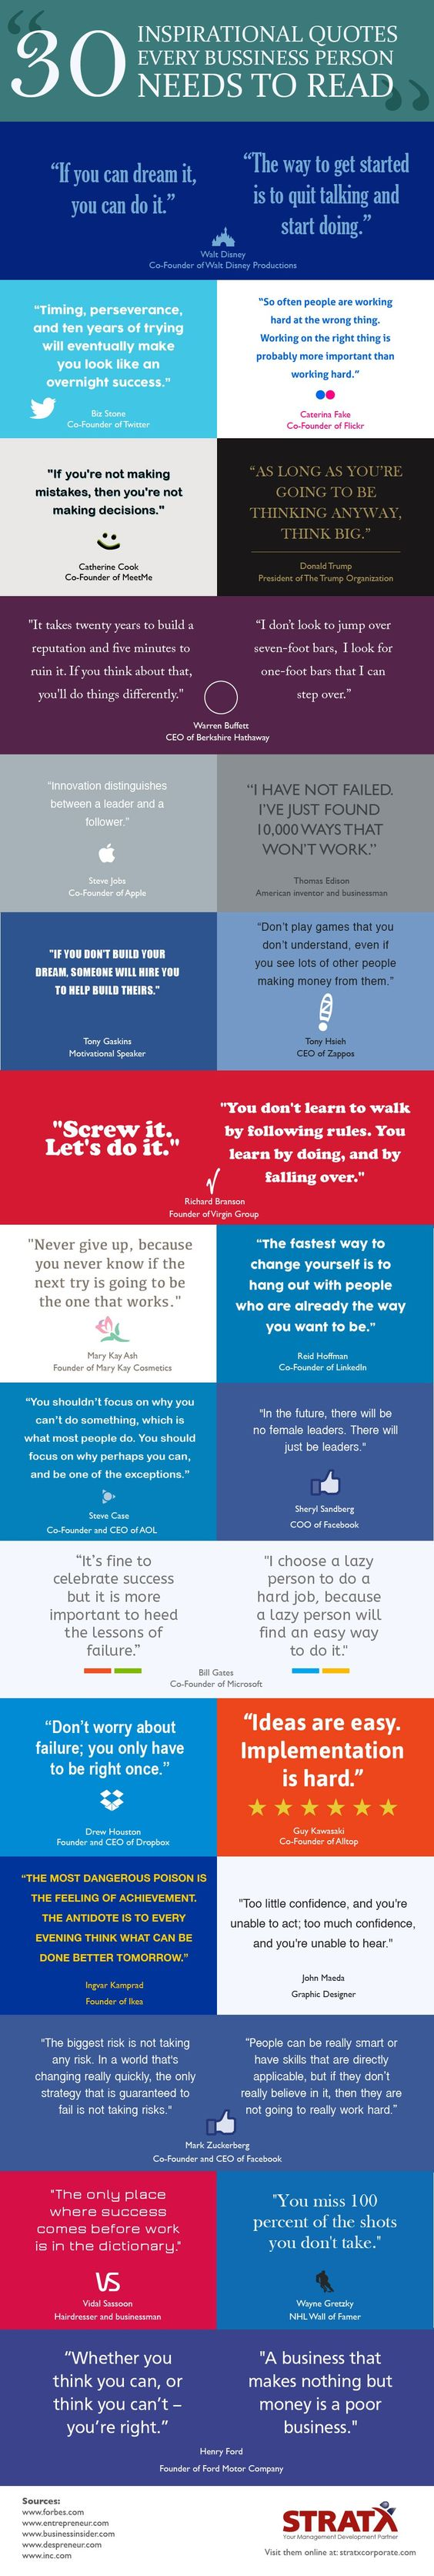 30 inspirational business quotes.